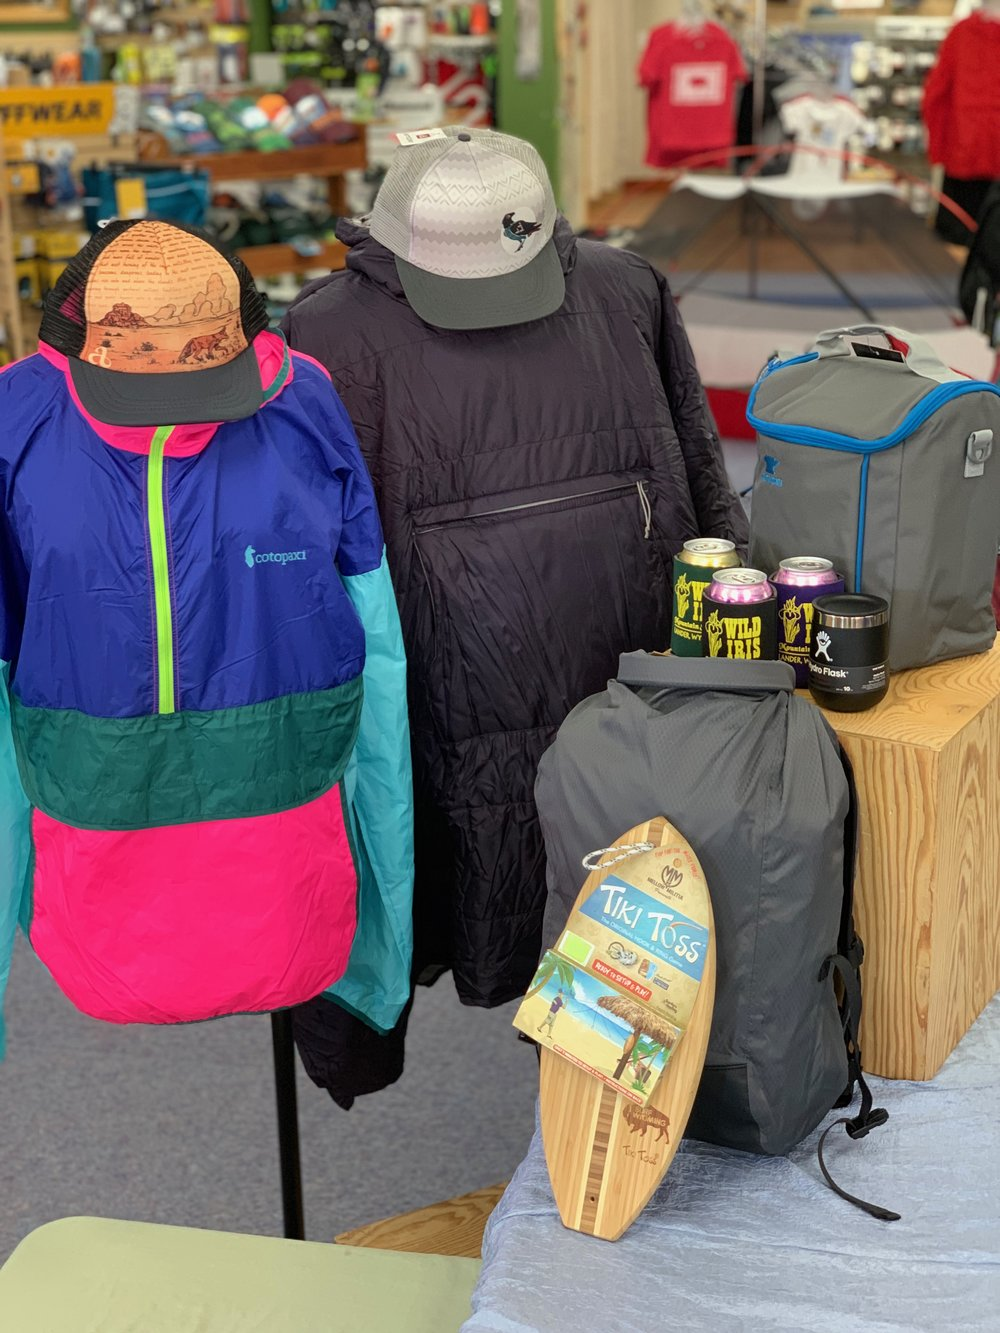 RAFFLE PRIZE #3 - Festival Goer - MSR Honcho Poncho: $130Cotopaxi Teca Windbreaker: $80Chrome Cardiel Orp Pack: $80Mountainsmith Sixer Cooler: $25Surf Wyoming Tiki Toss Game: $30Hydroflask 10oz Tumbler: $20Ambler Trucker Hats: $70Wild Iris Logo Coozies: $9Total Approximate Retail Value: $450